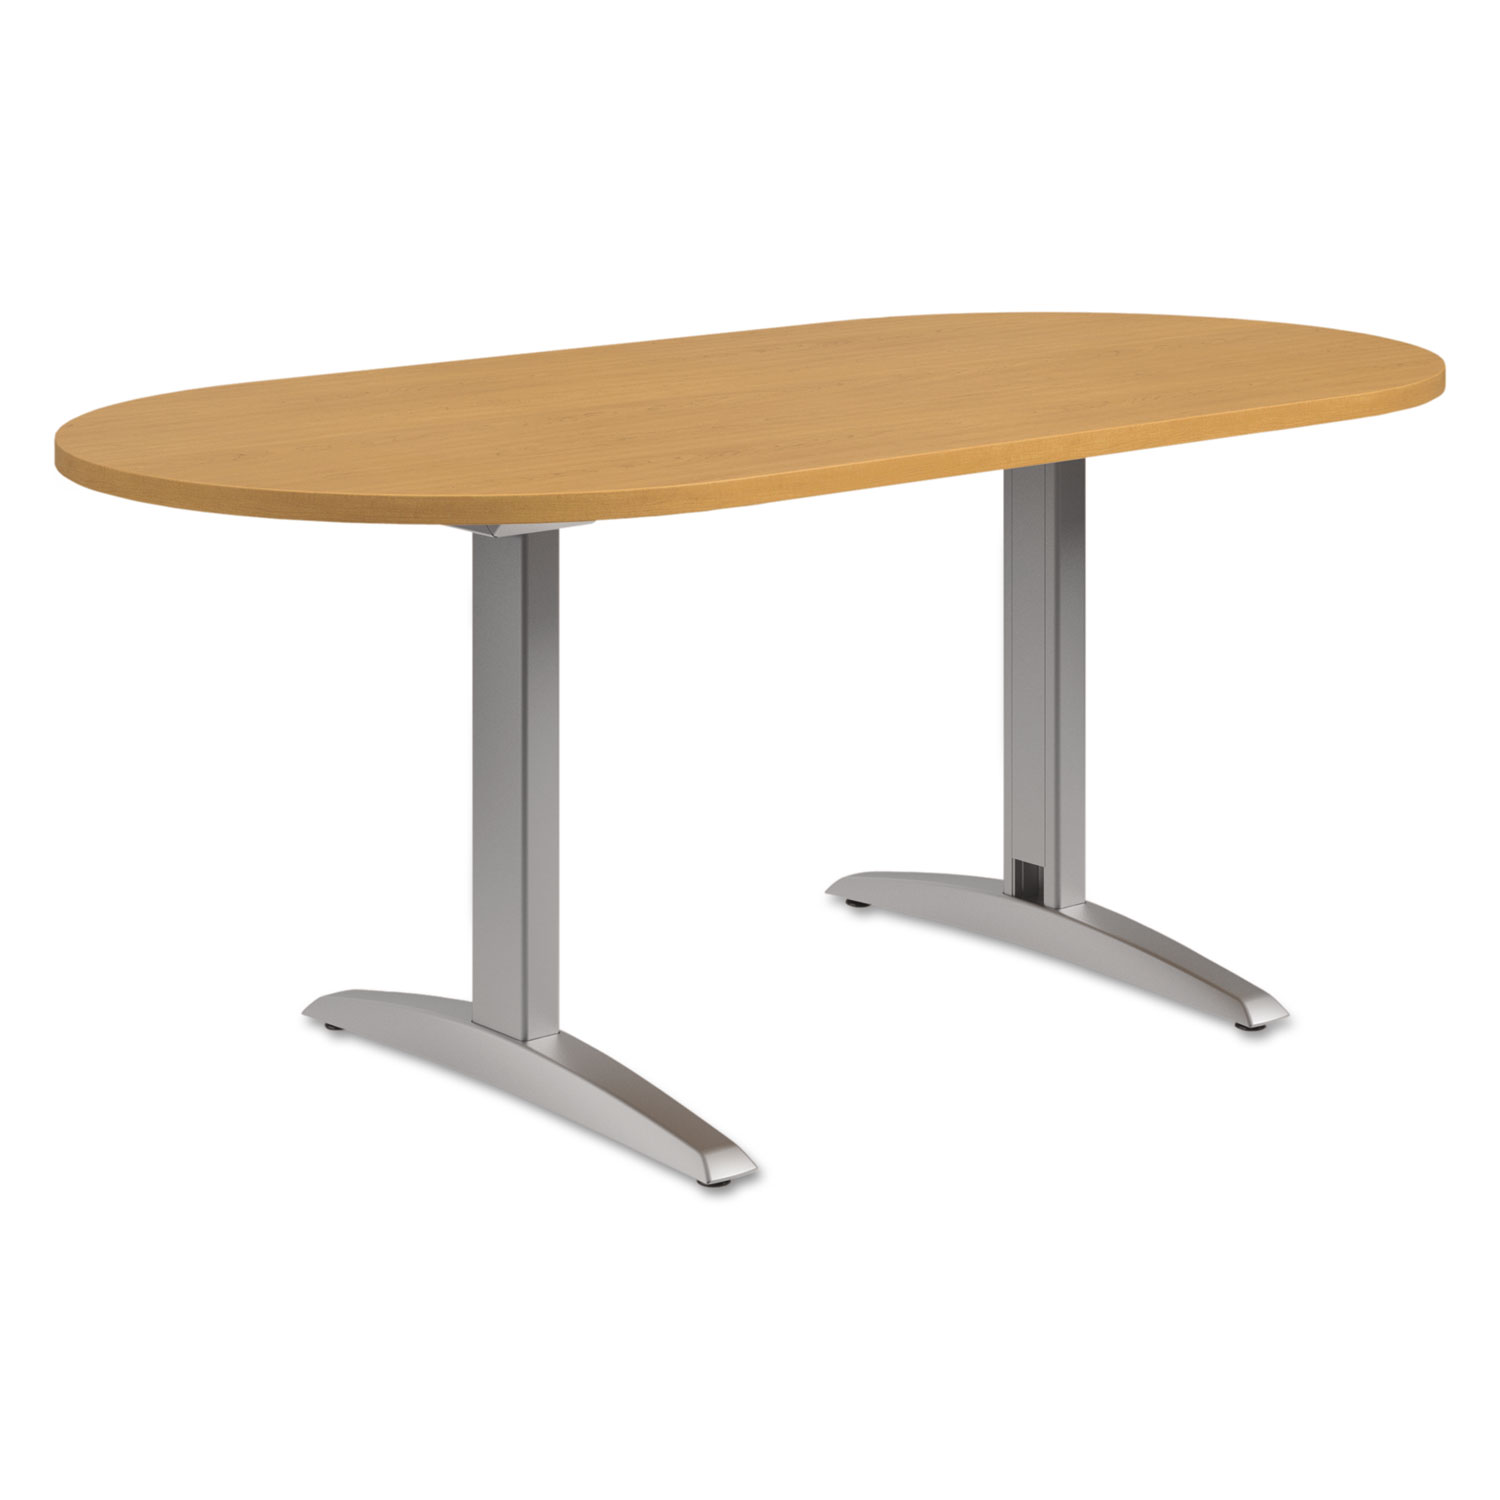 Preside Racetrack Conference Table Top By HON HONTLAGCNC - 72 x 36 conference table